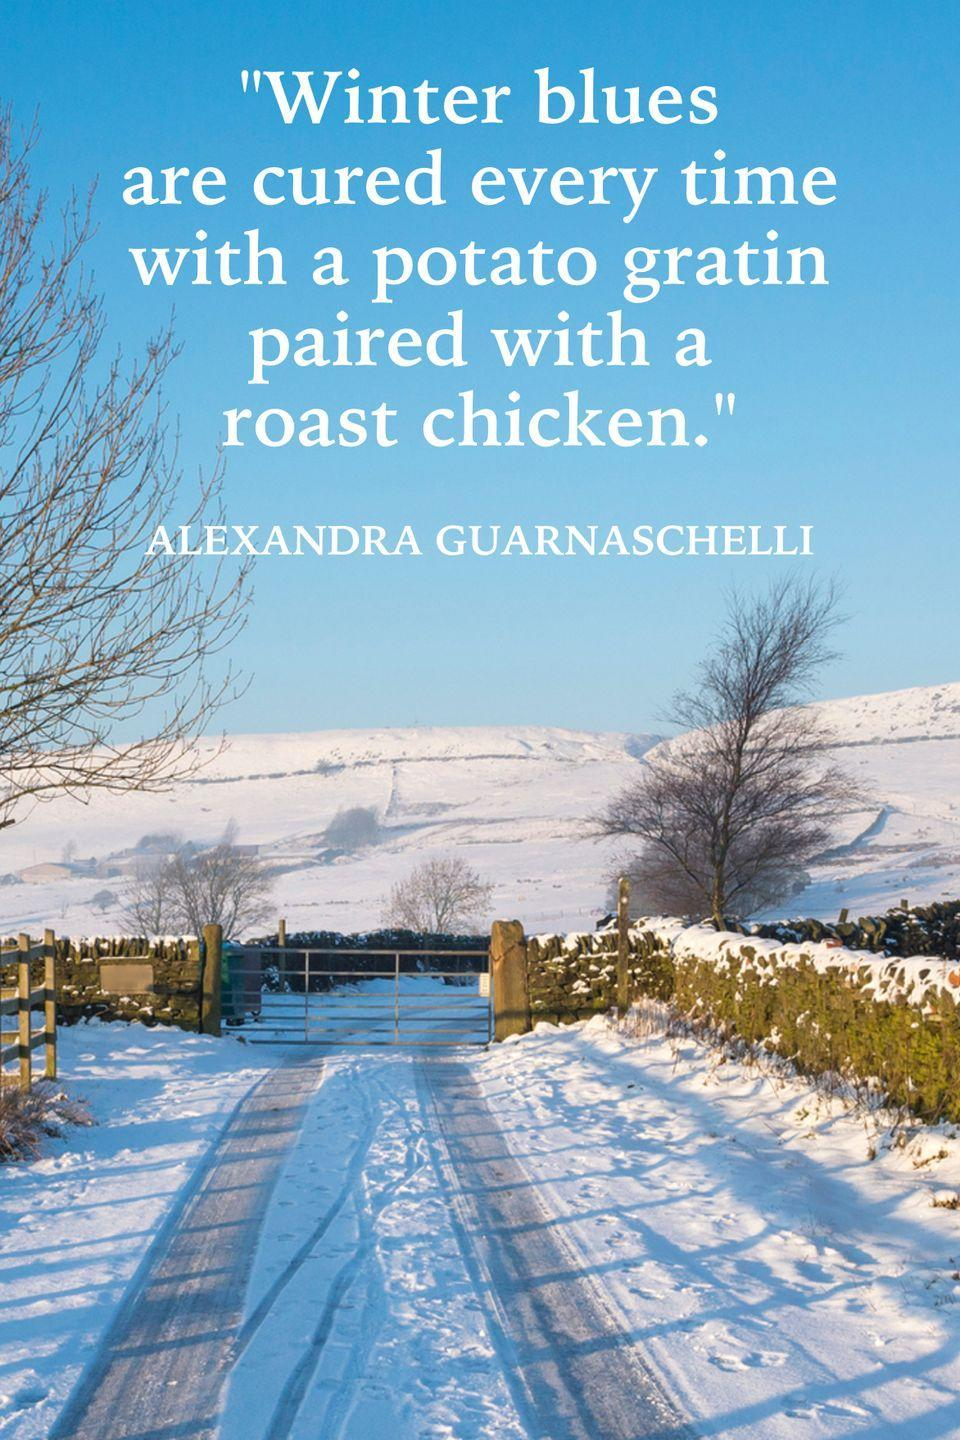 "<p>""Winter blues are cured every time with a potato gratin paired with a roast chicken.""</p>"